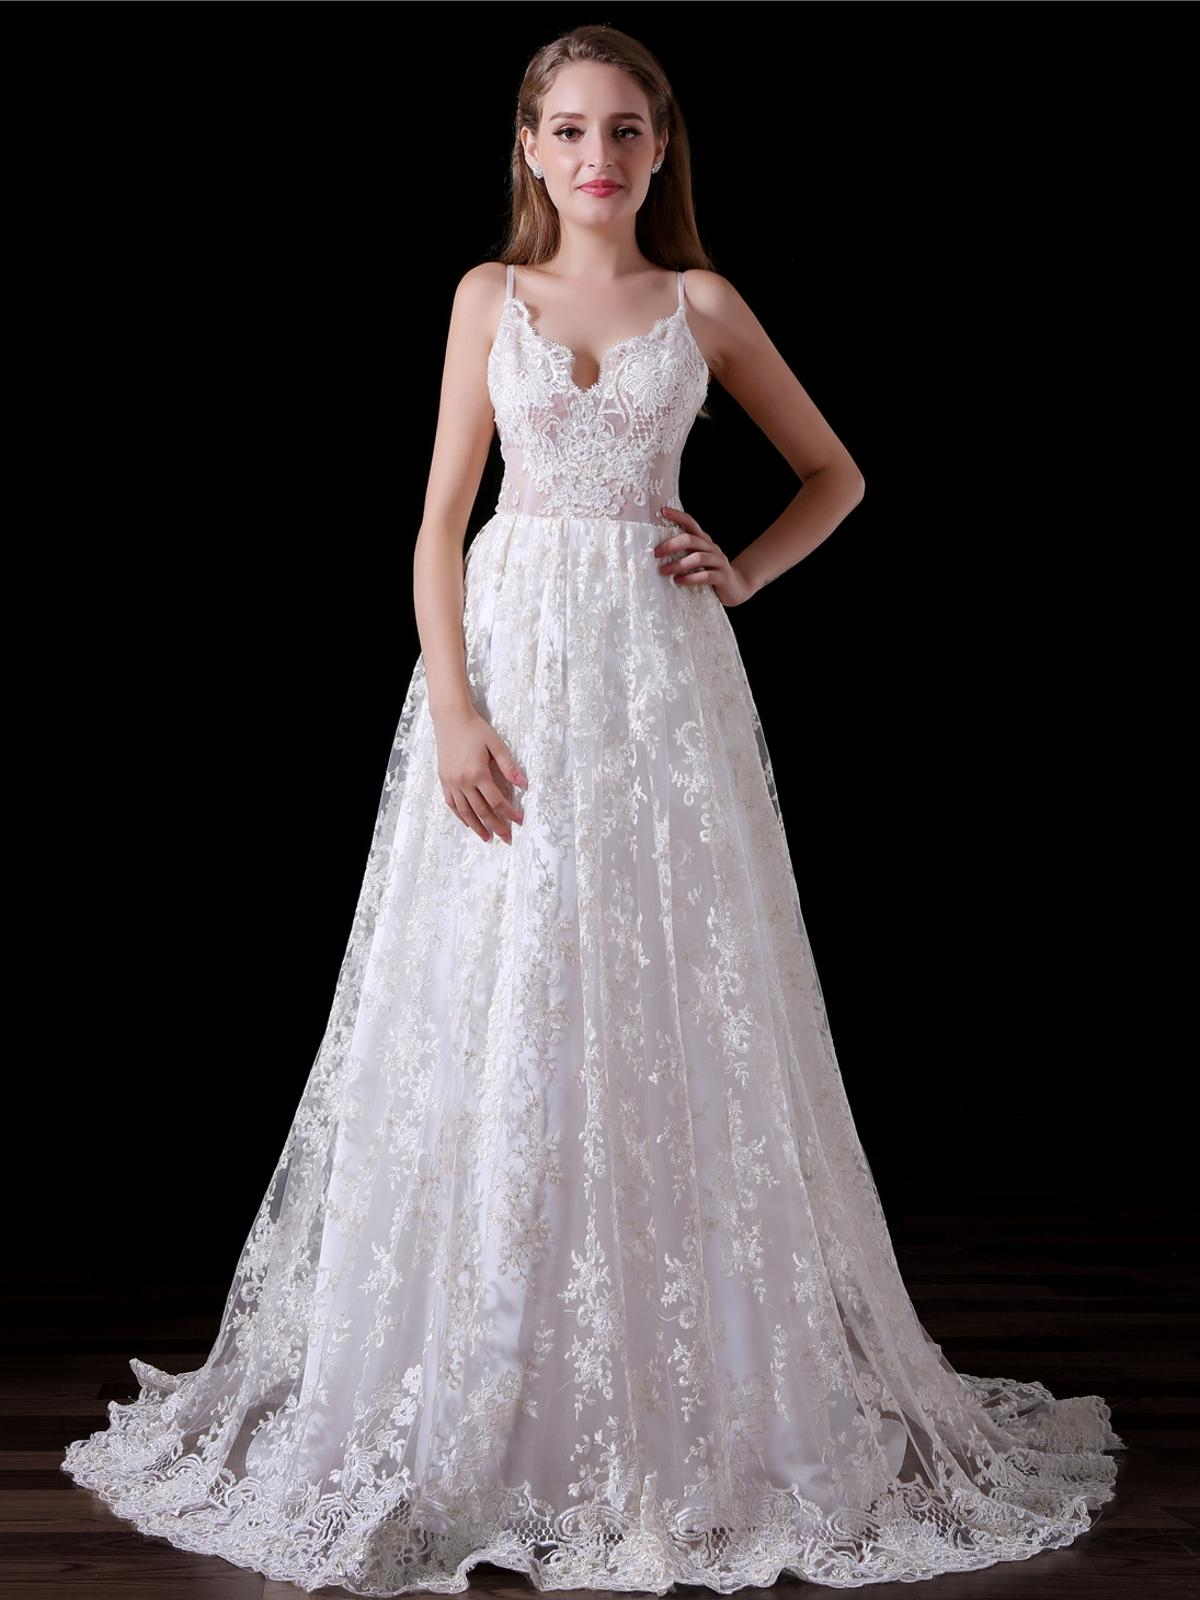 Sexy Elegant Girls Dresses V Neck Spaghetti Open Back A Line Lace Long Party Formal Evening Dresses For Women Prom Dresses